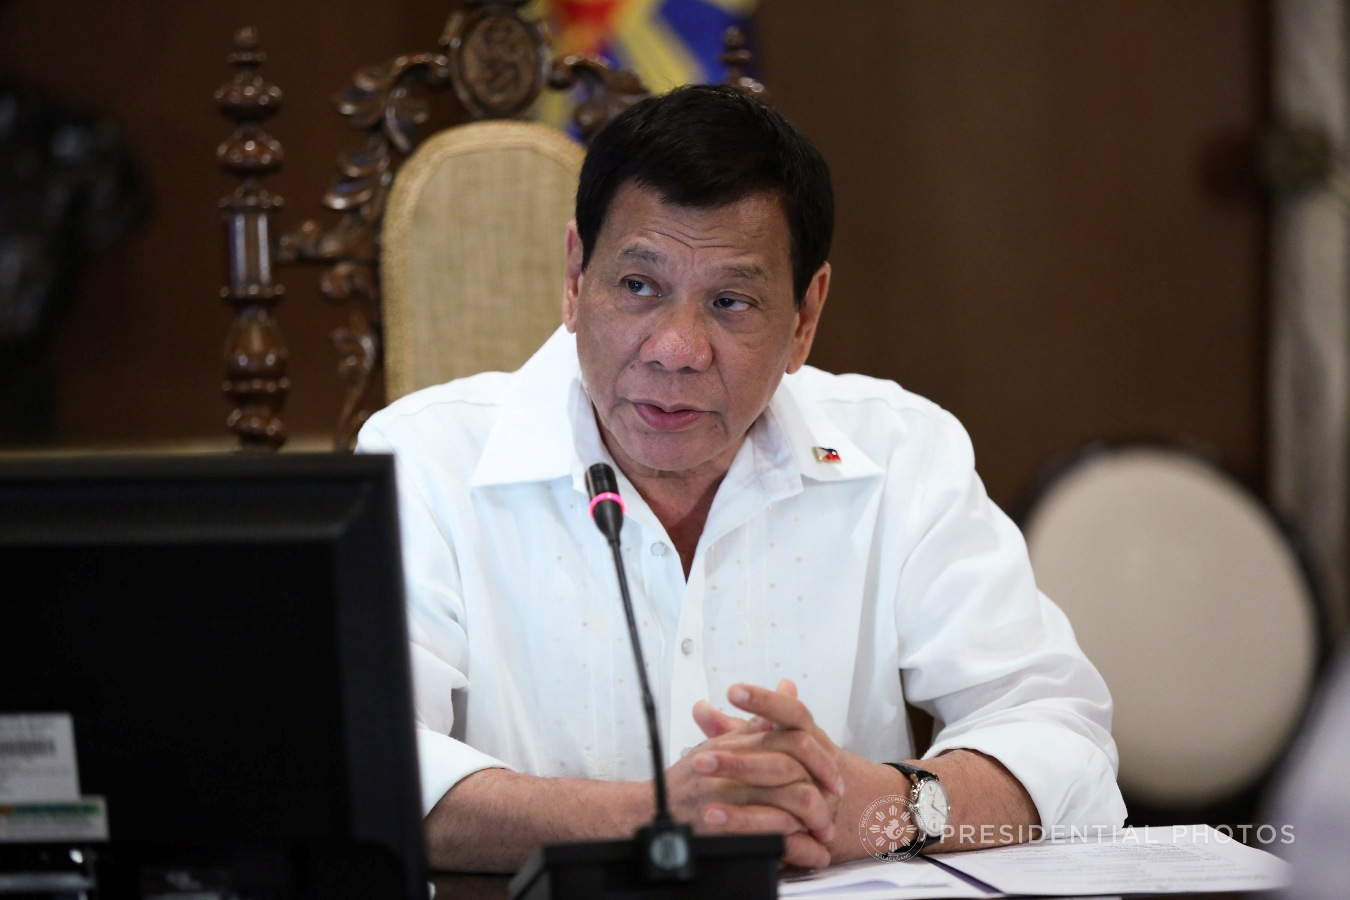 President Rodrigo Roa Duterte presides over the cabinet cluster meeting in Malacañan Palace on November 6, 2017. Among the issues discussed are the rehabilitation efforts in Marawi City including the health, livelihood, and housing projects for the residents and the wounded government security forces. Also tackled in the meeting are the updates on the PH-Japan Defense Cooperation as well as the proposed Enhanced Comprehensive Local Integration Program. KARL NORMAN ALONZO/PRESIDENTIAL PHOTO